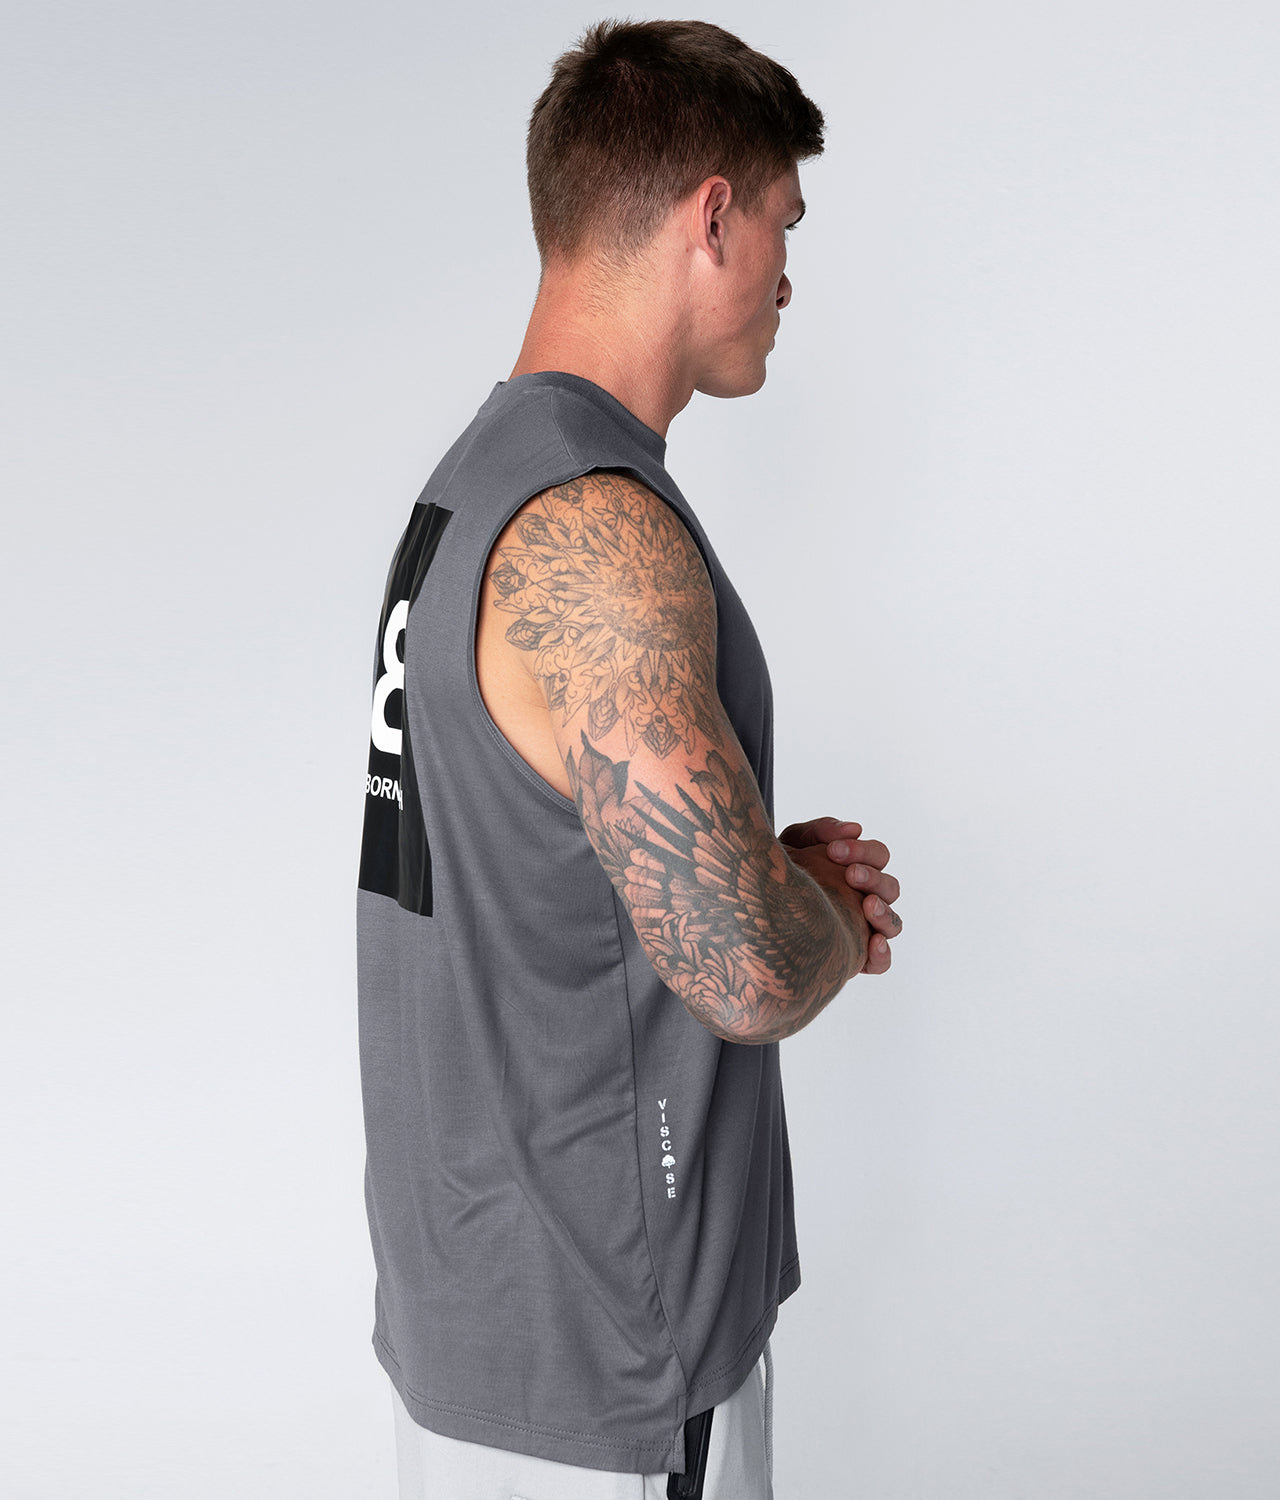 Born Tough Gray Stretchable Sleeveless Gym Workout Shirt For Men